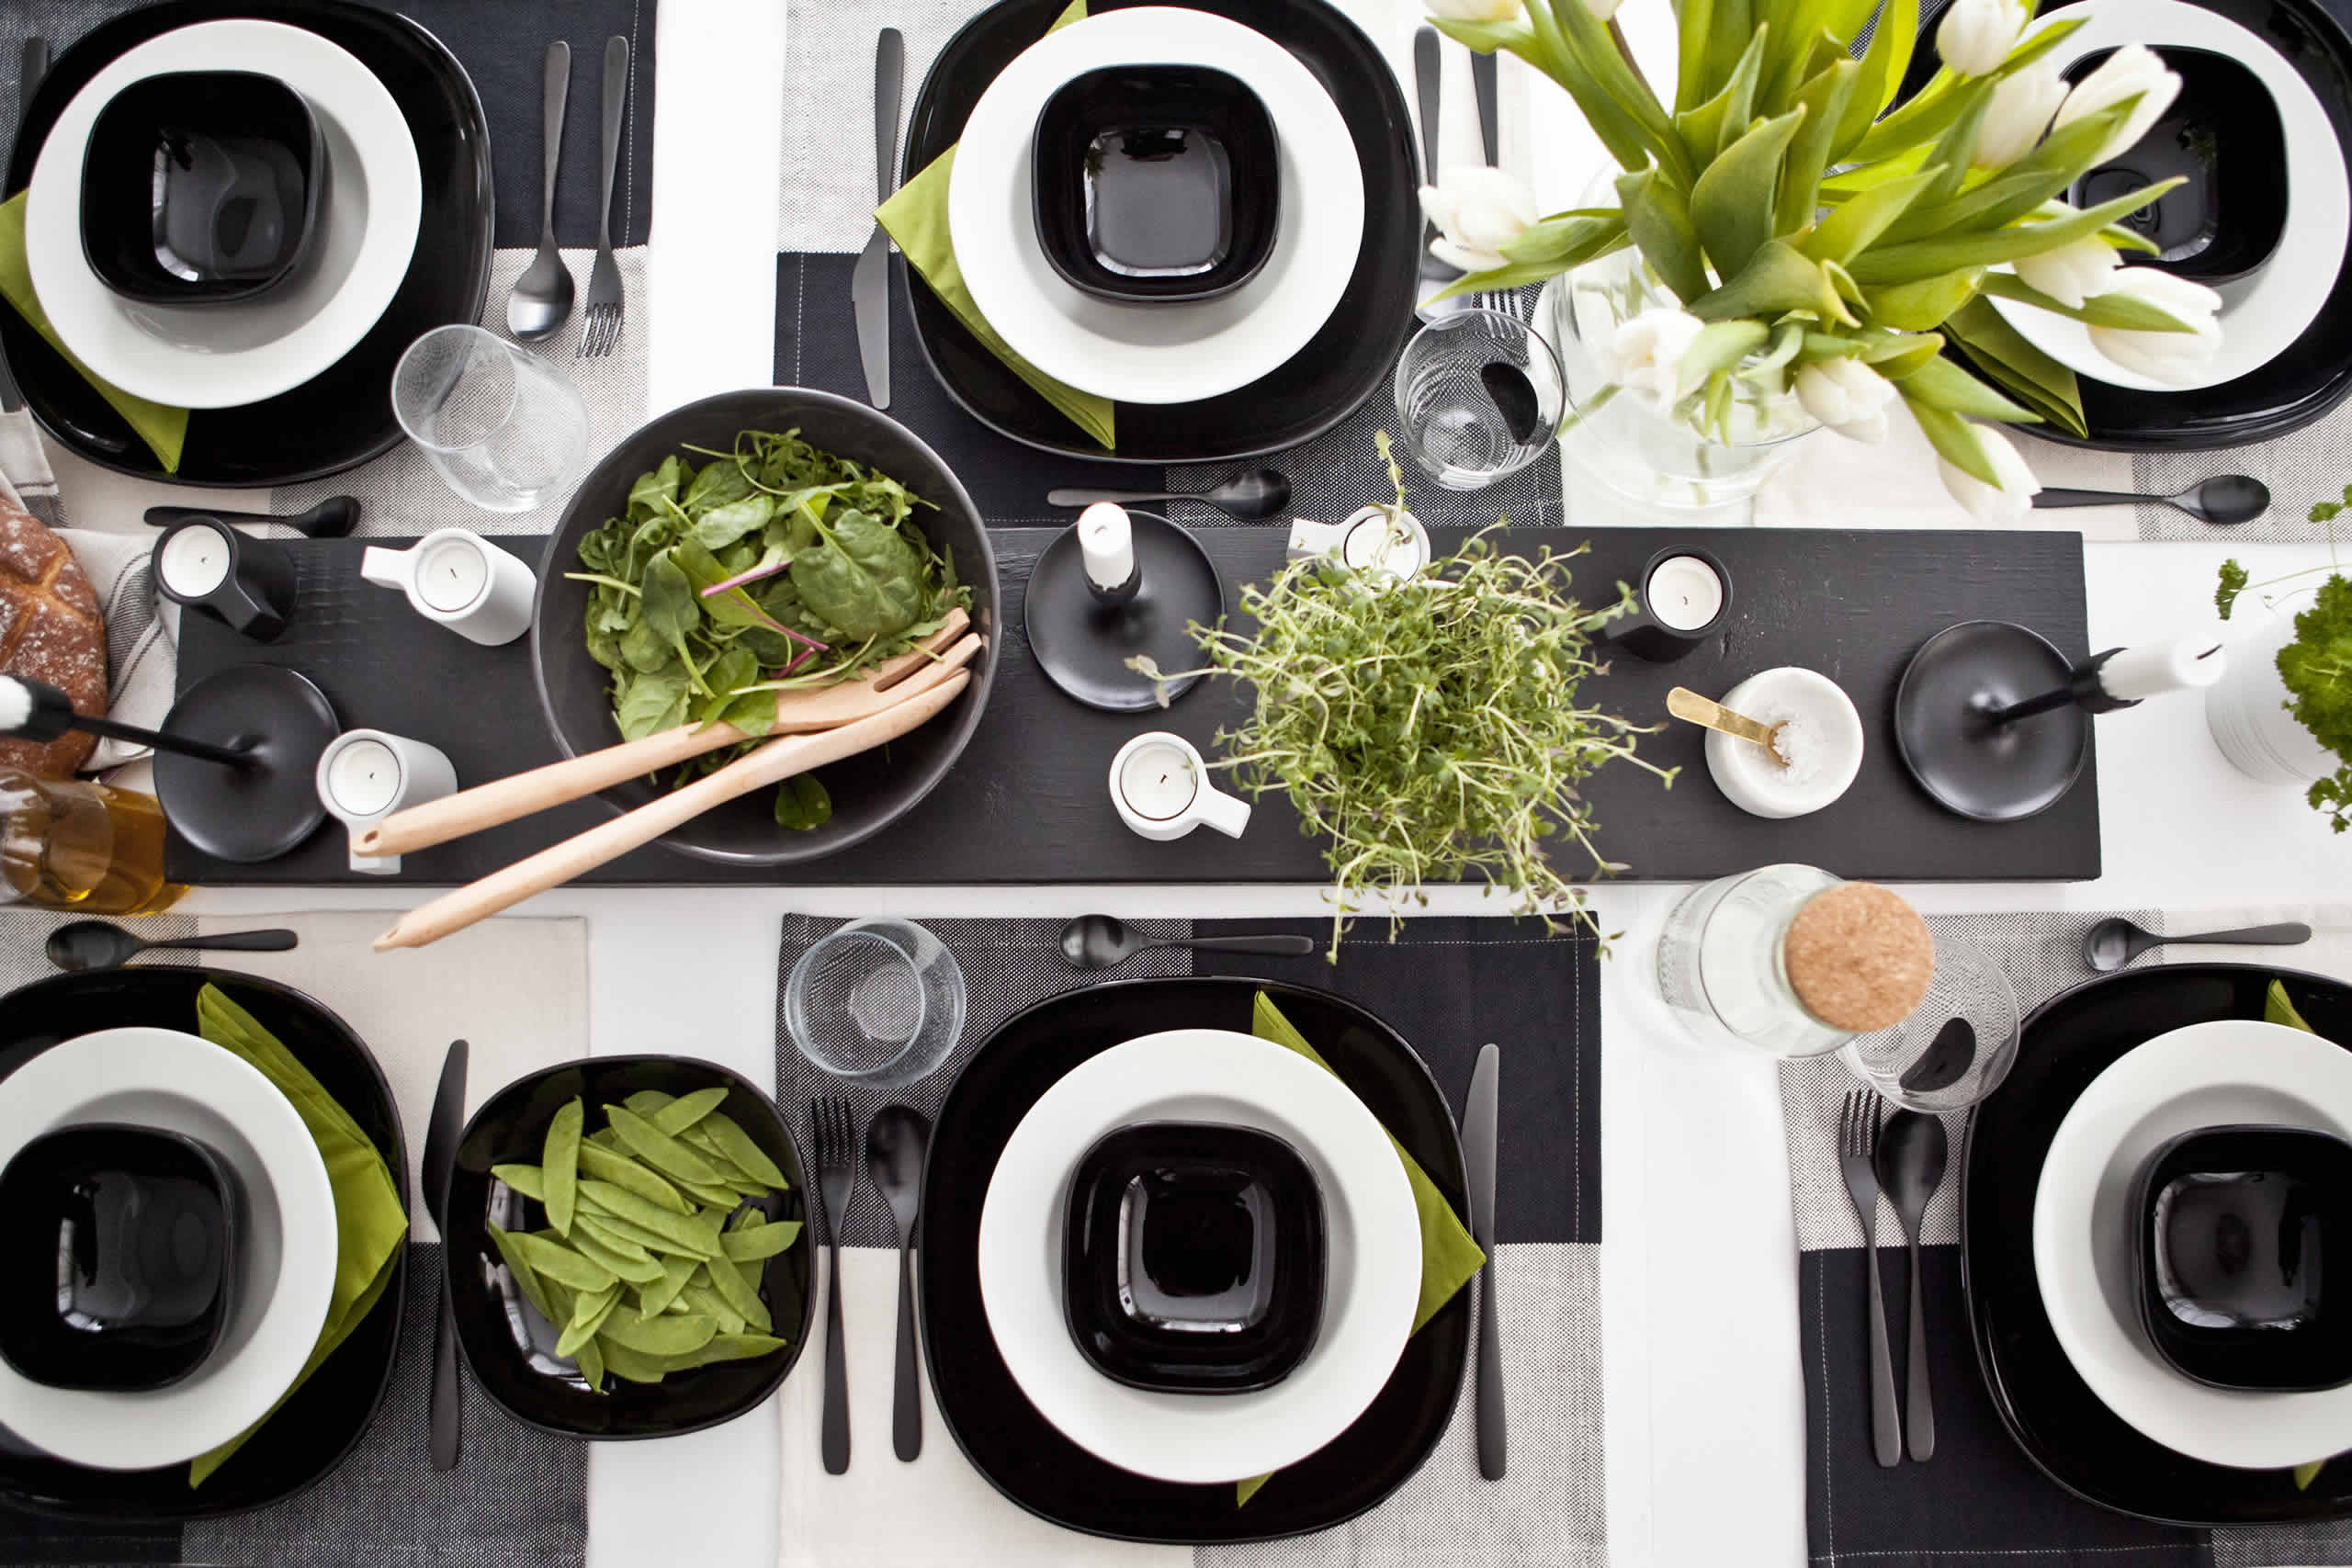 IKEA Ideas - A striking monochrome table setting